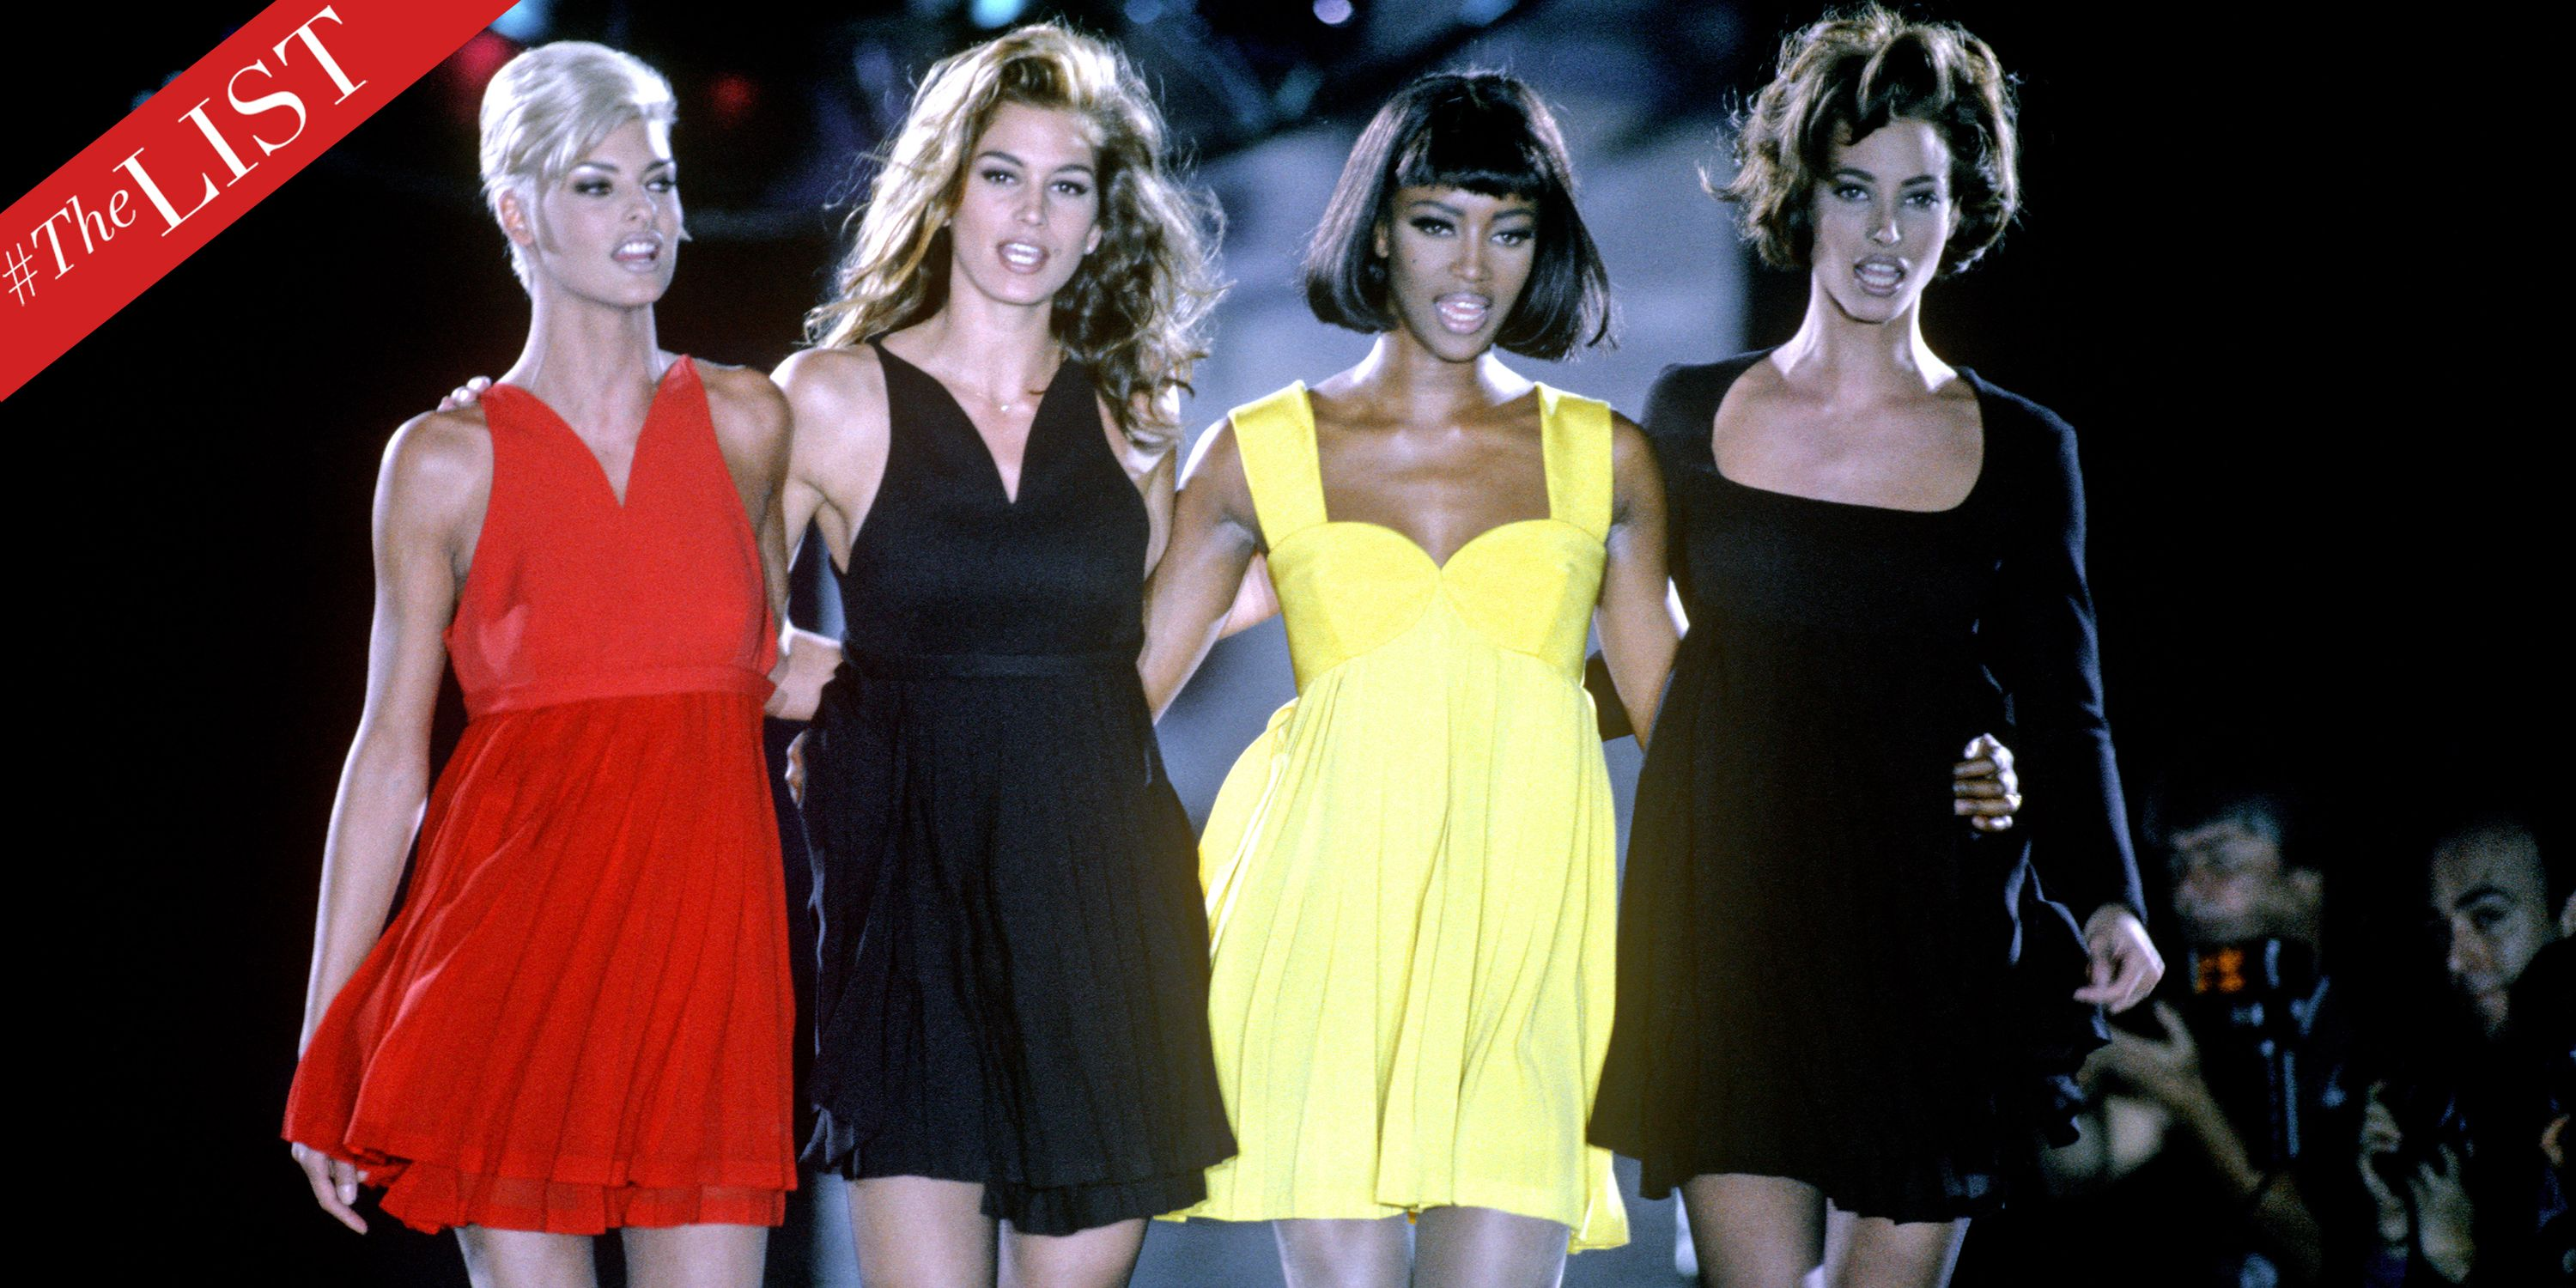 The 90s Films That Every Fashion Girl Should Watch